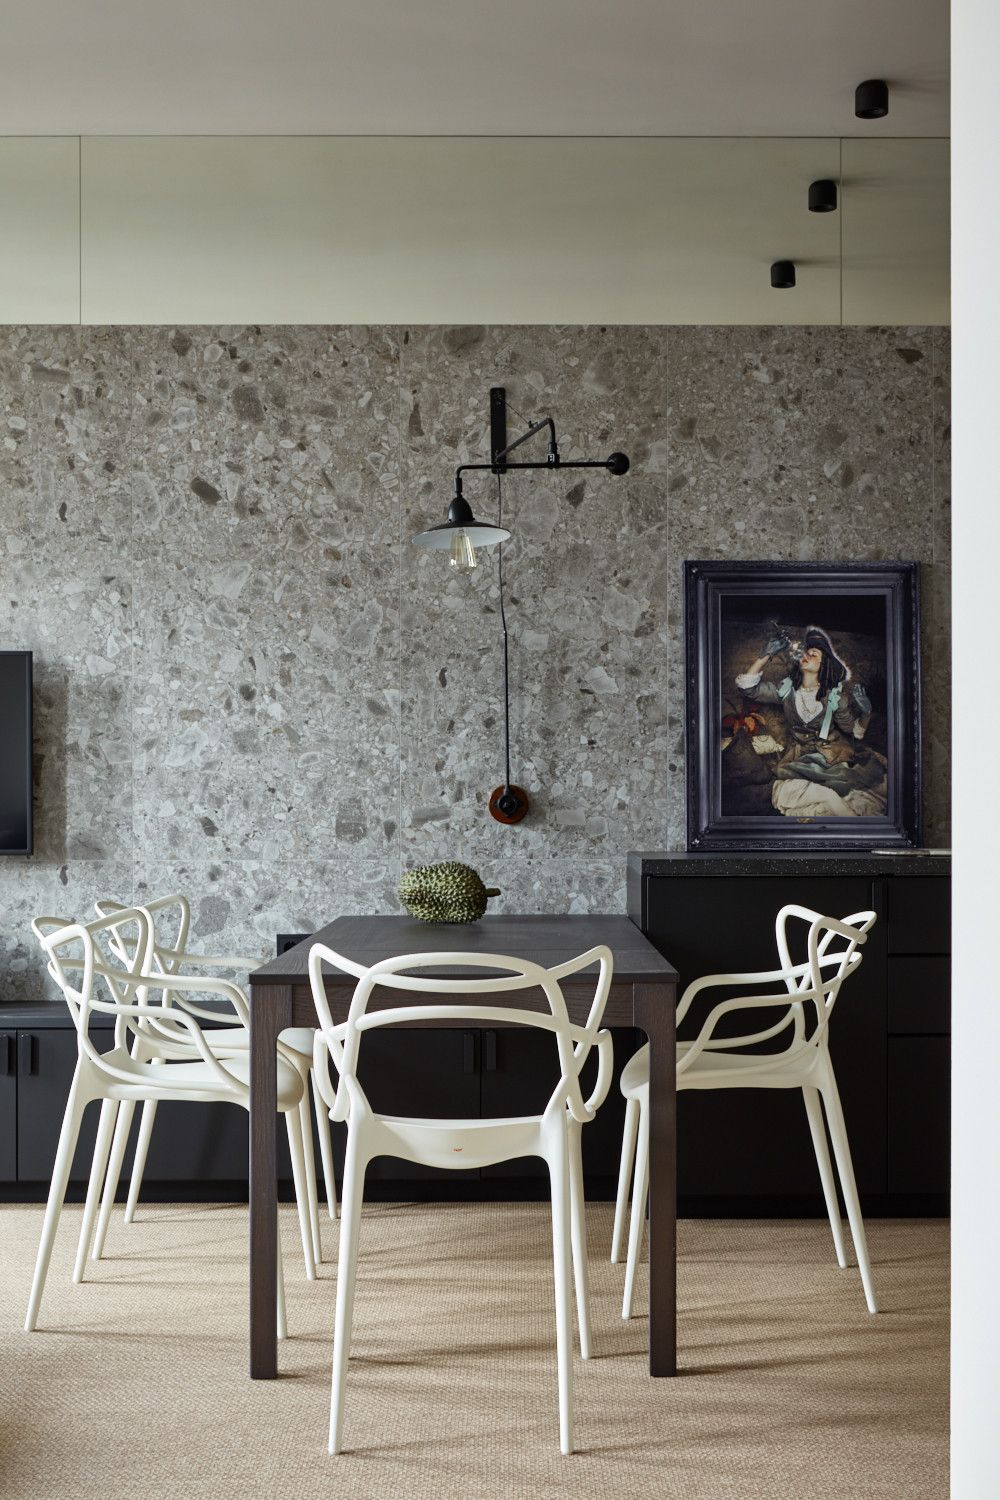 Modern-minimal-dining-room-with-sculptural-chairs-in-white-22111